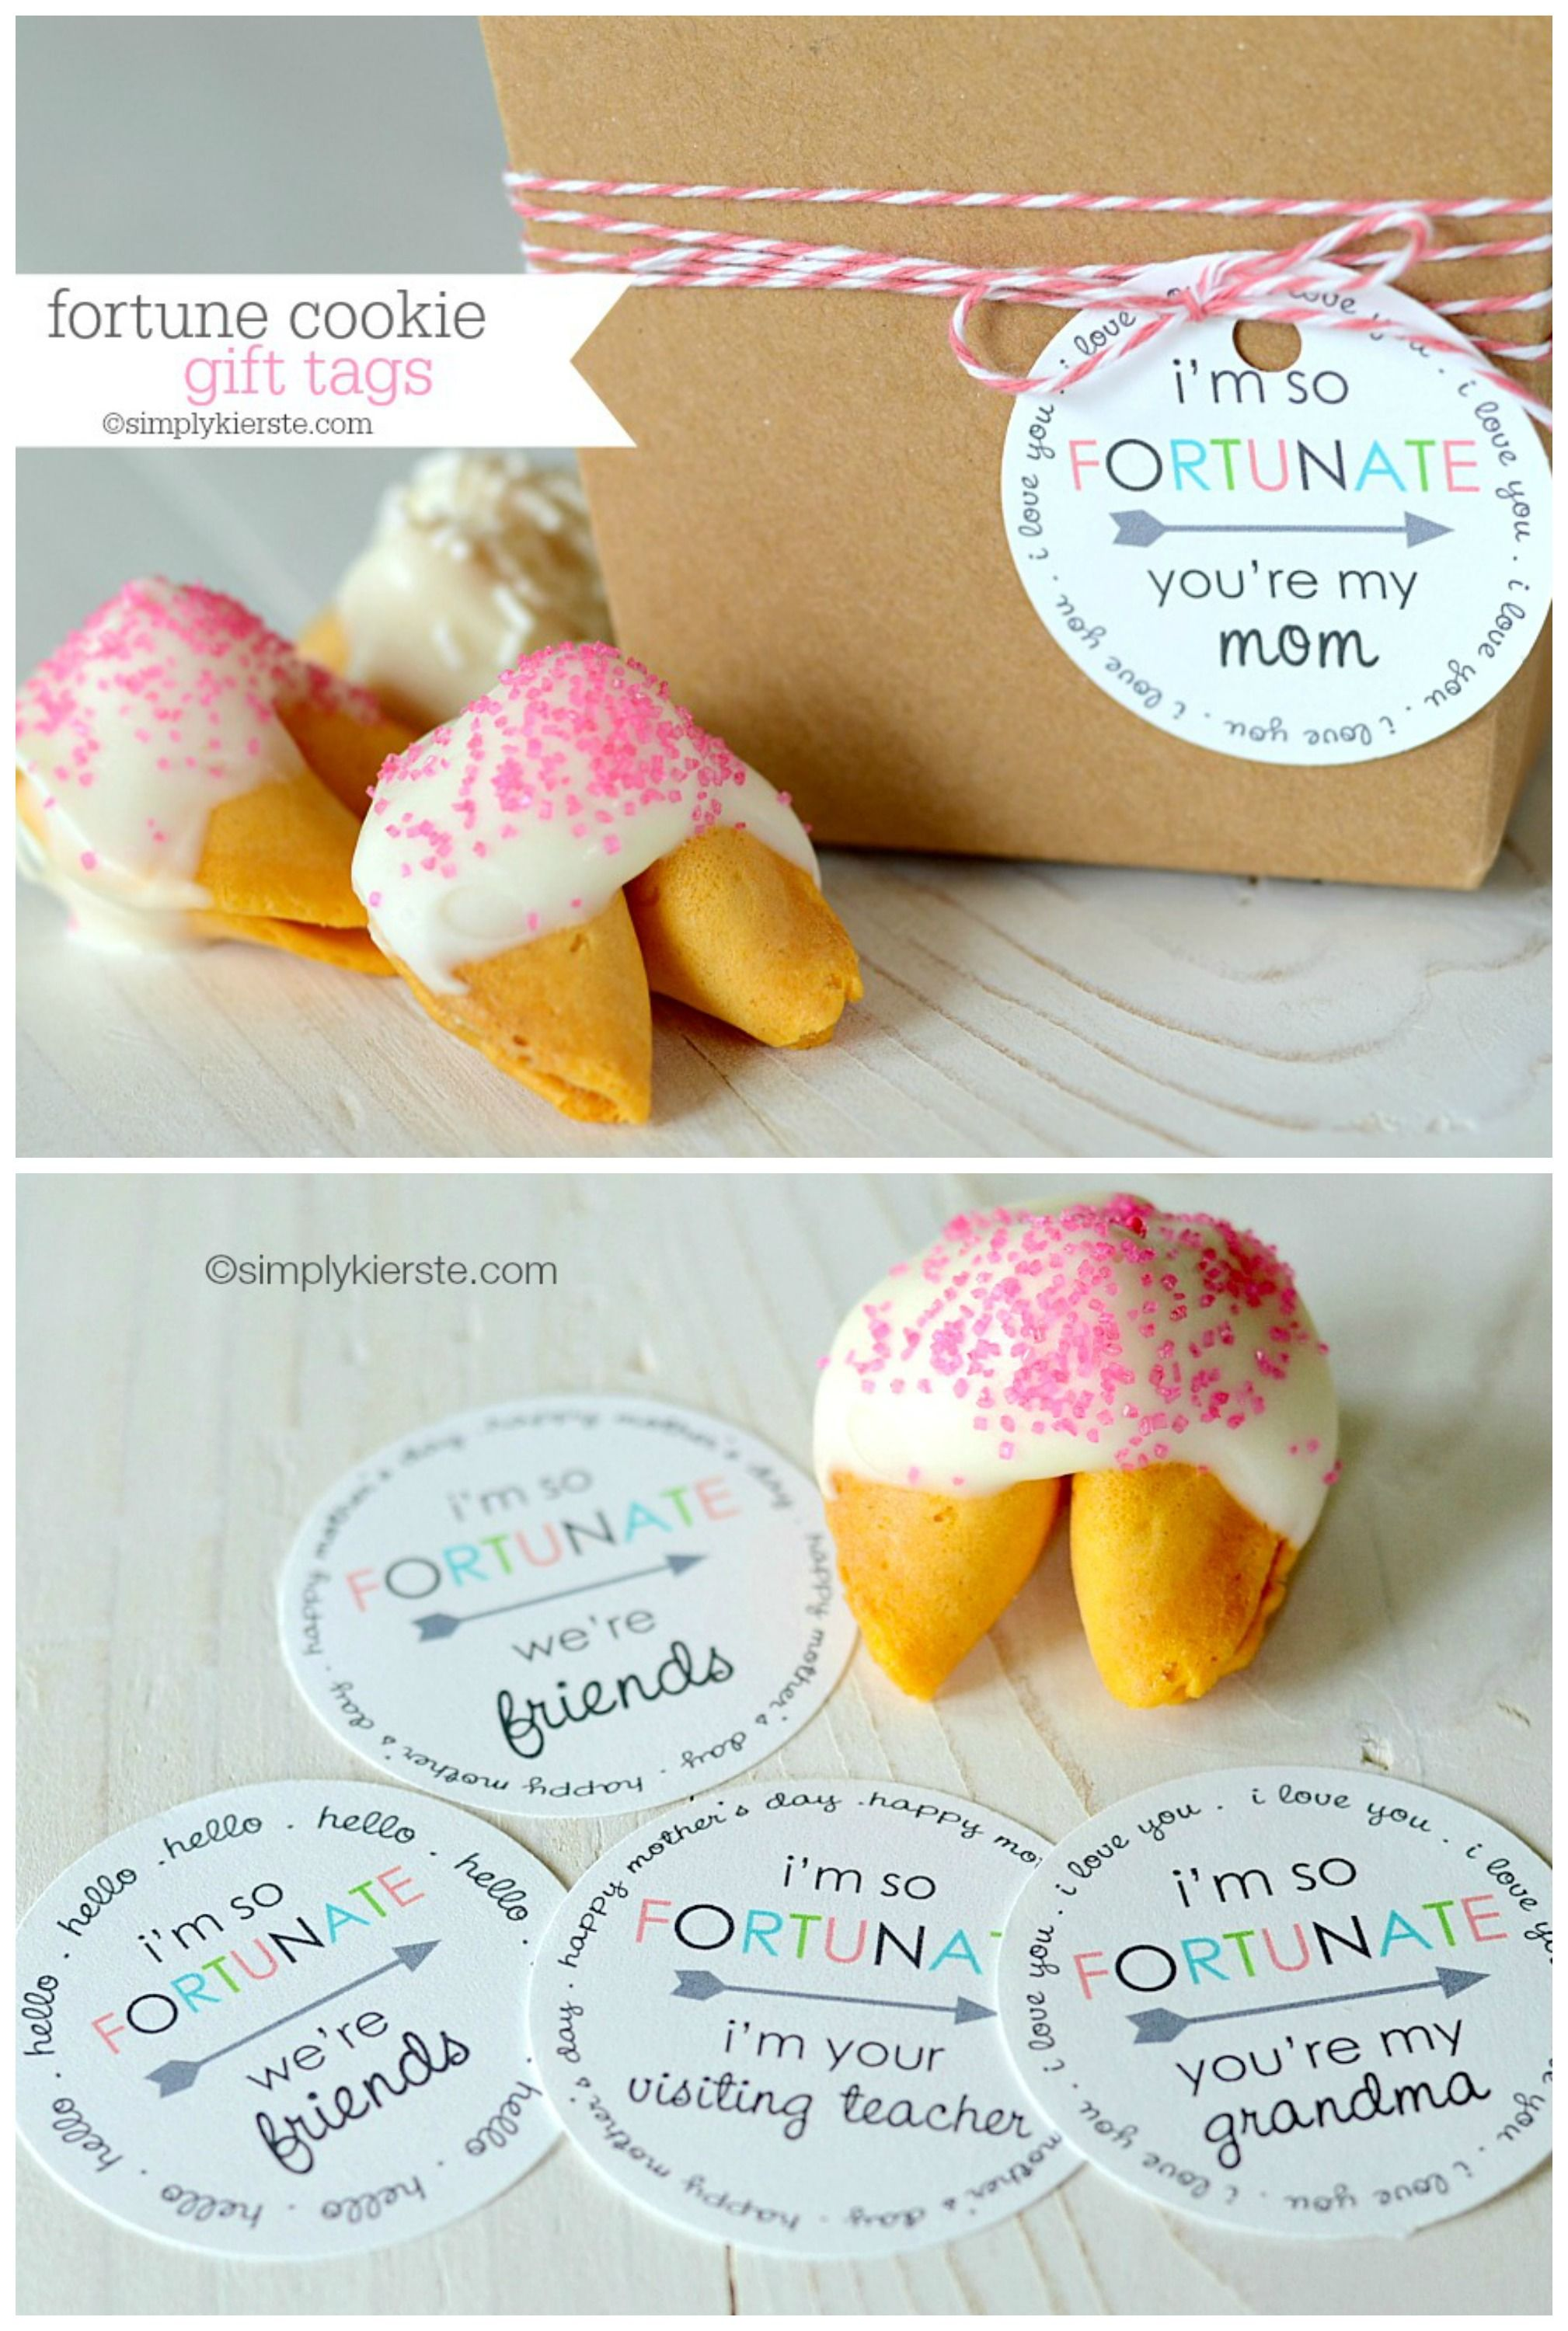 Fortune cookie gift tags cookie gifts free printable gift tags fortune cookie gift tags simplykierste free printable negle Choice Image